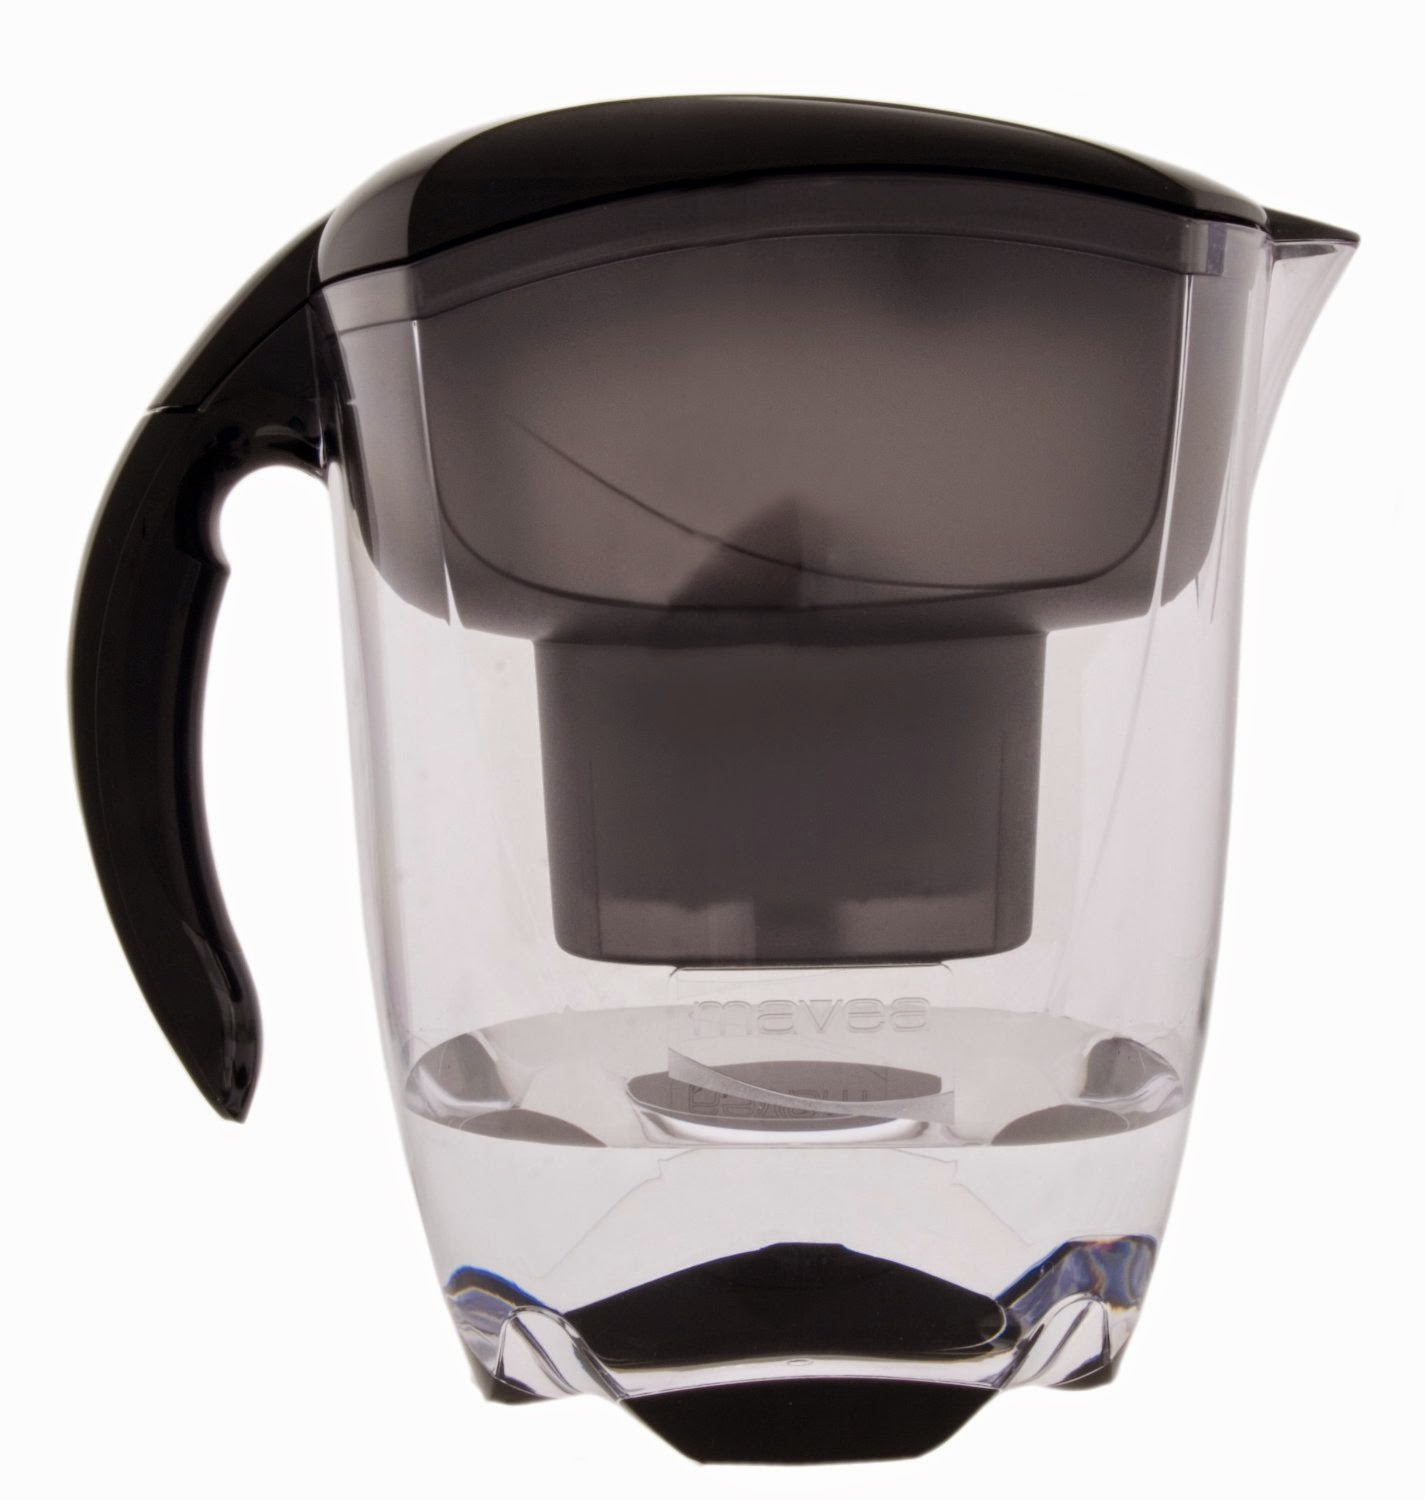 Brita marella and mavea elemaris water filter review singapore a cup of milk - Glass filtered water pitcher ...